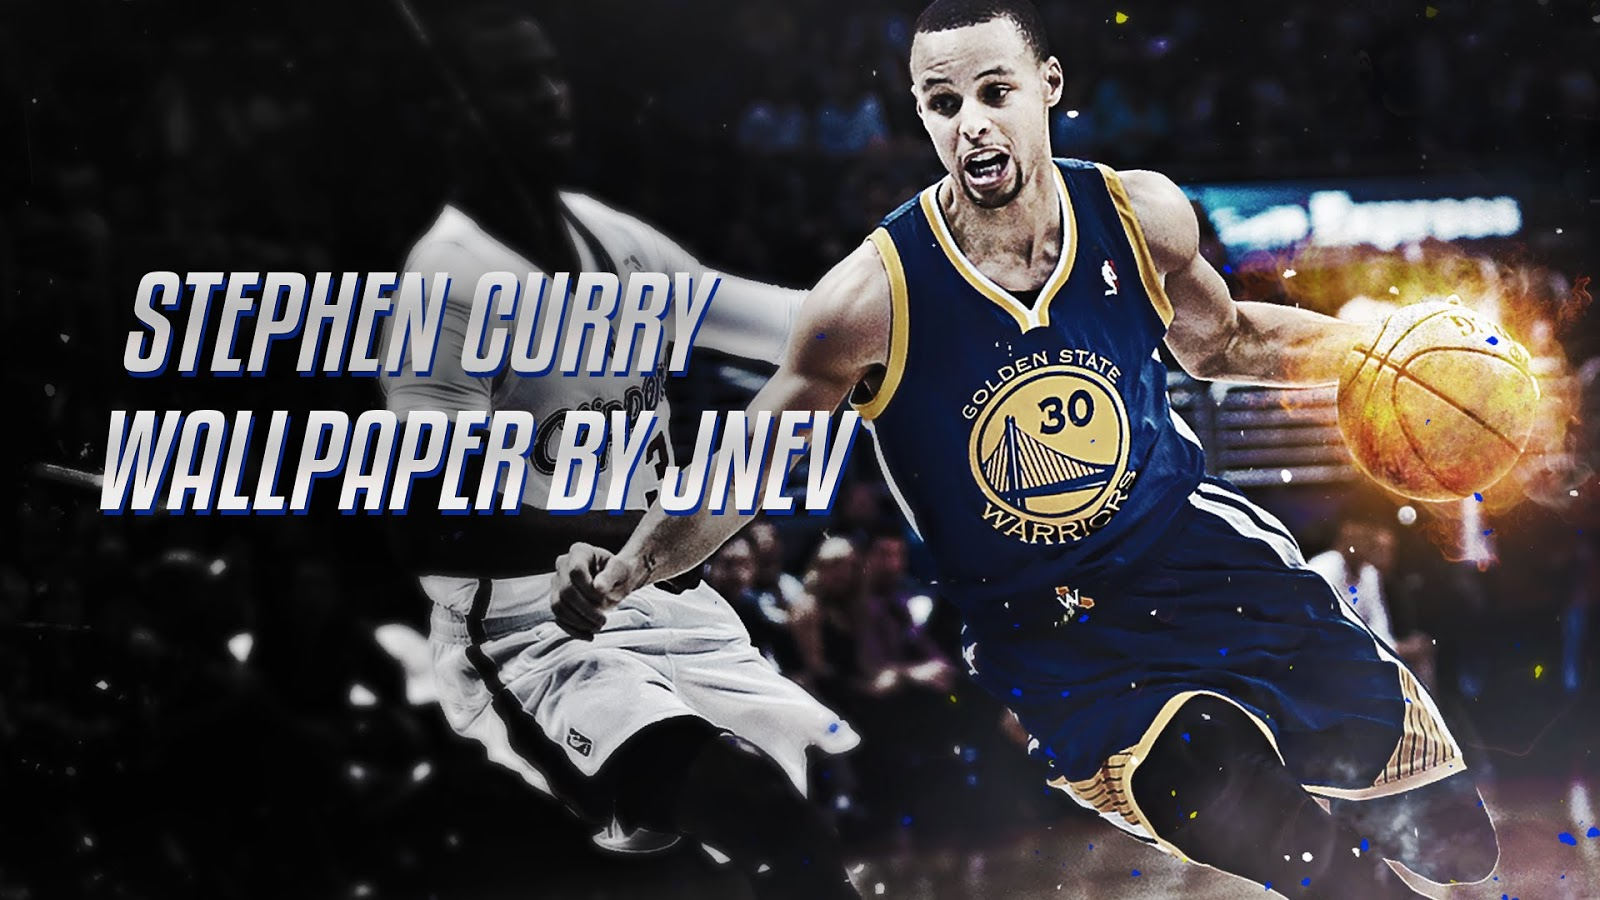 Awesome Stephen Curry Wallpaper for Desktop